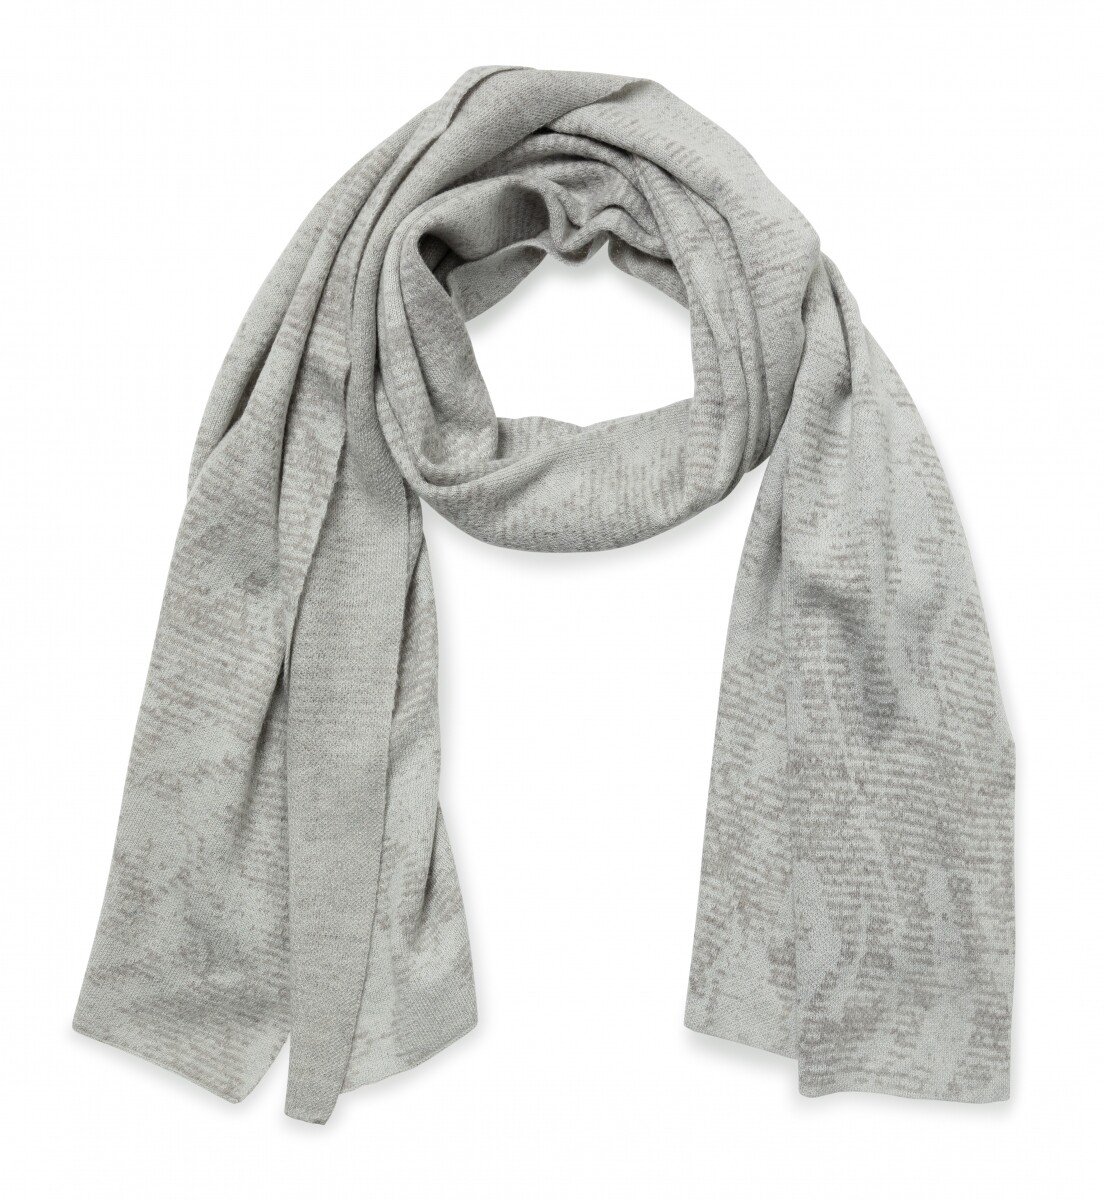 YAYA | SJAAL | 1300105-111 LIGHT GREY MELANGE